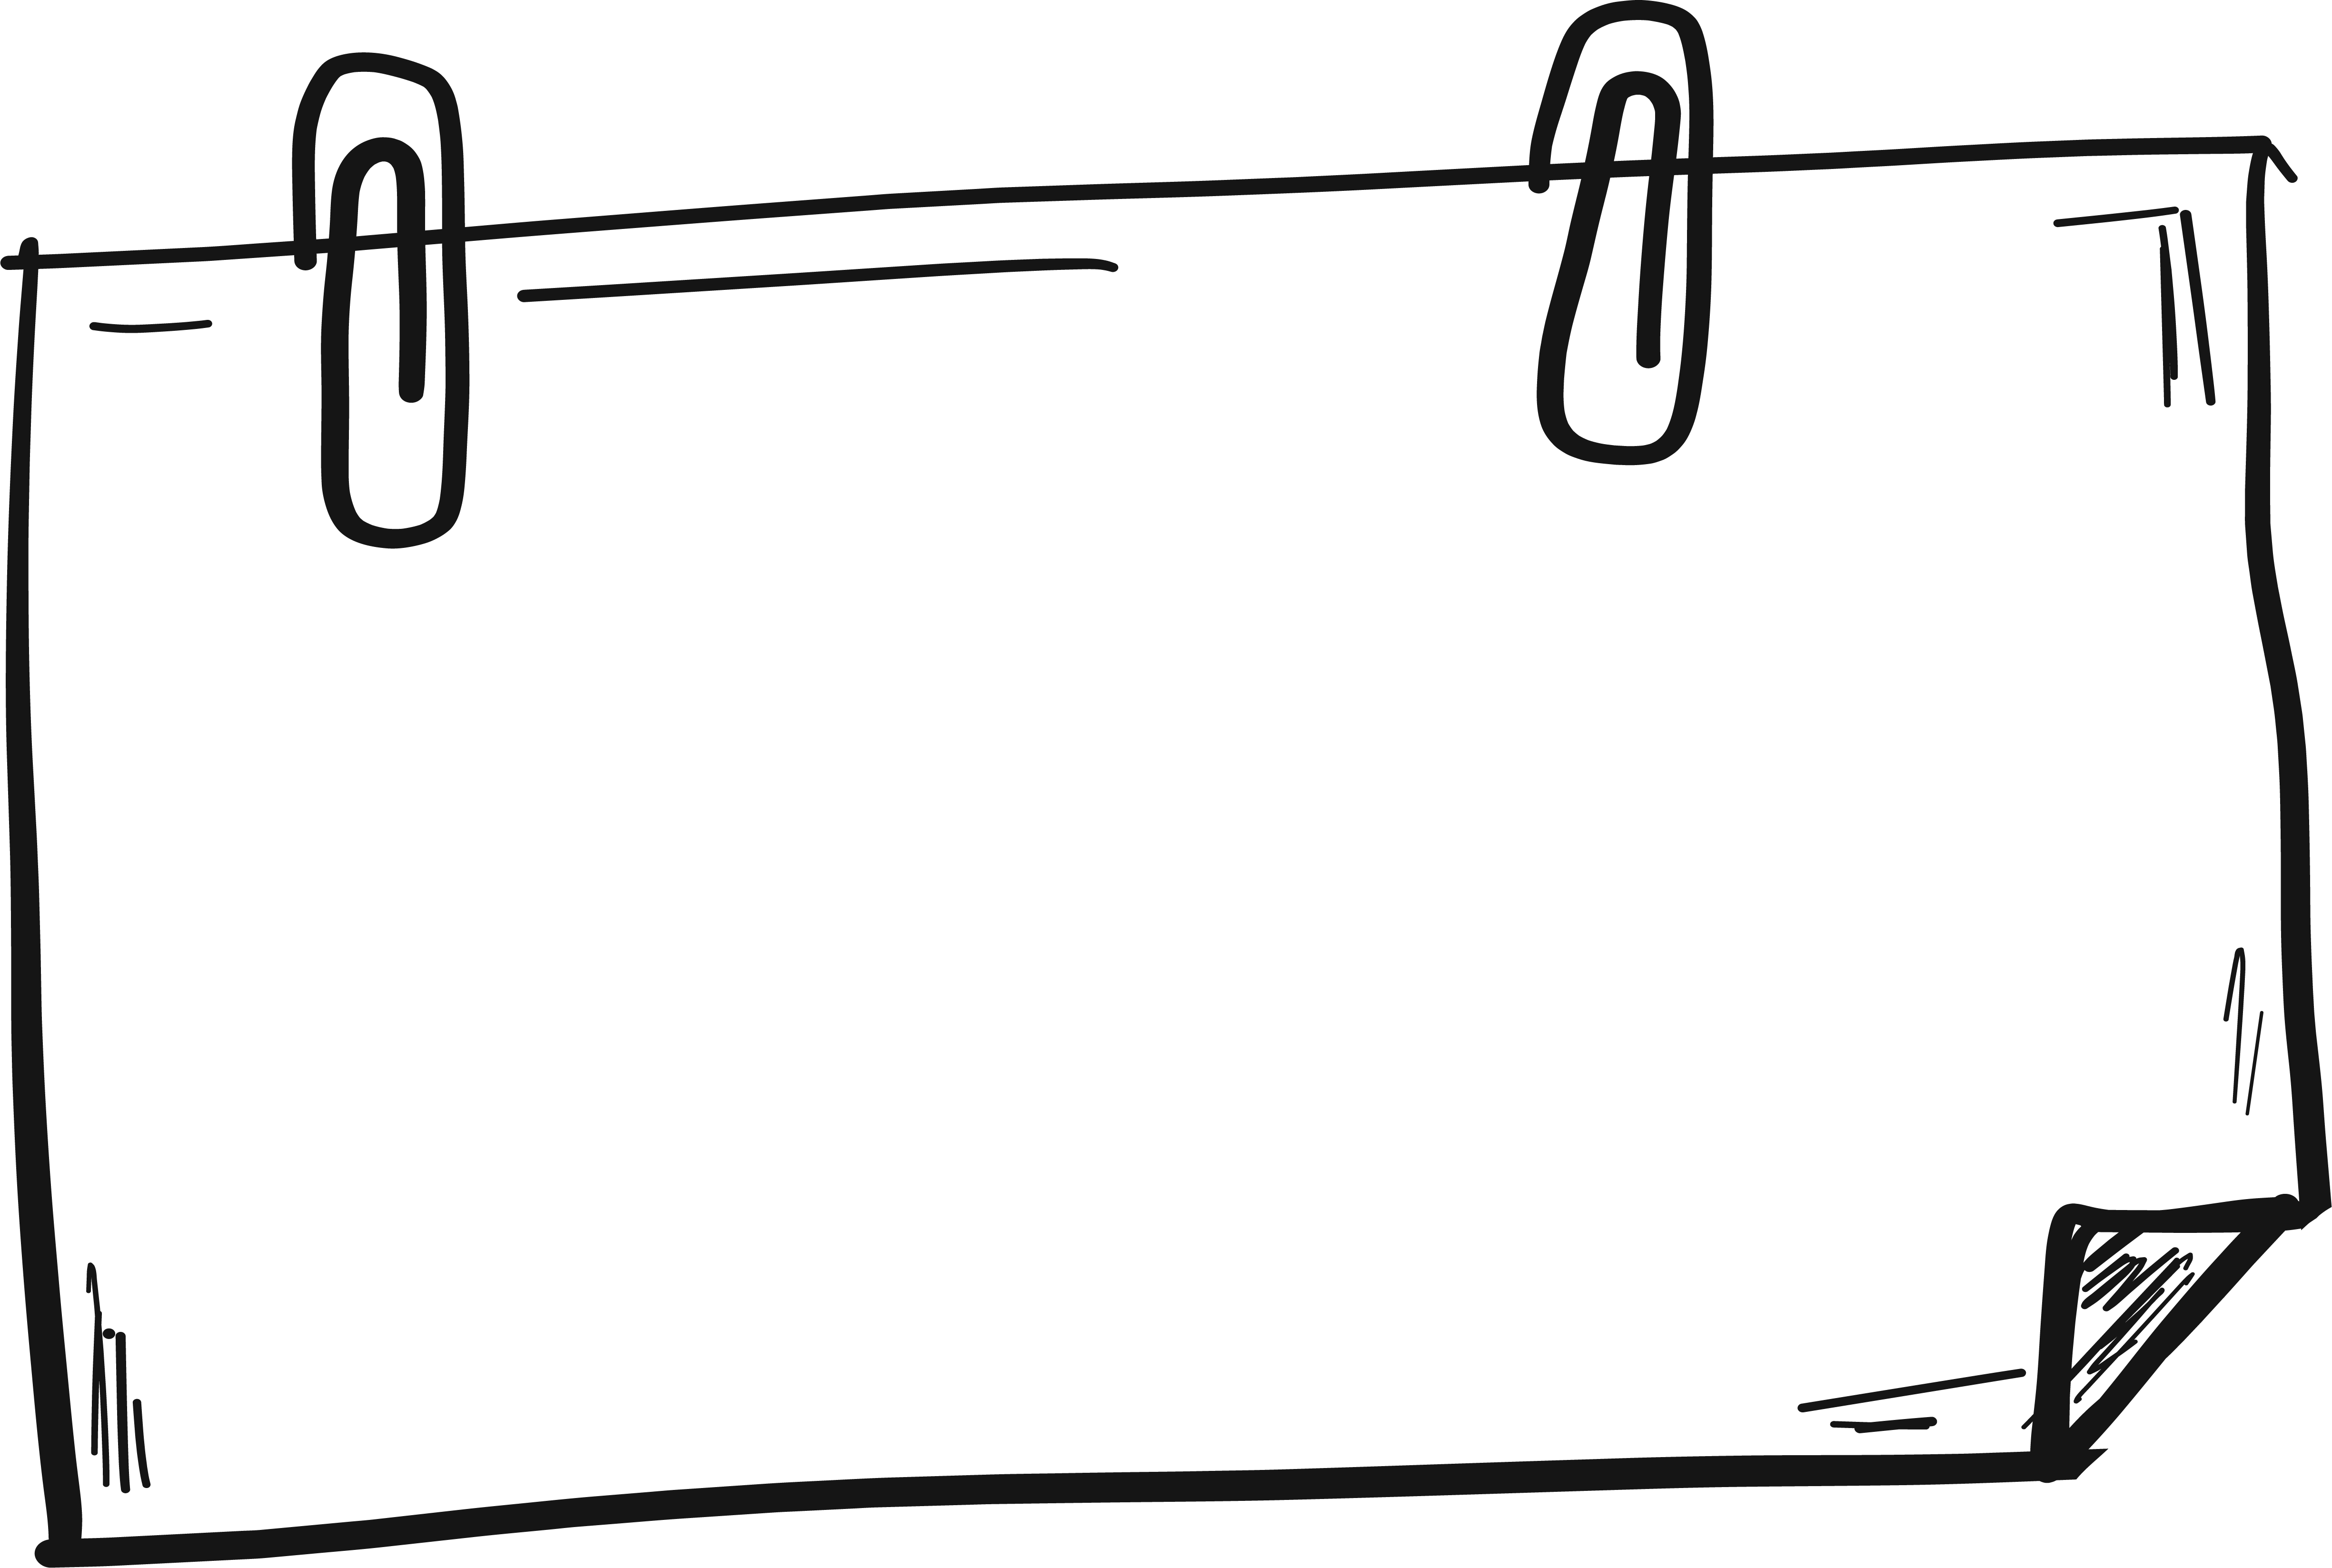 Hand drawn border png. Computer file lines transprent